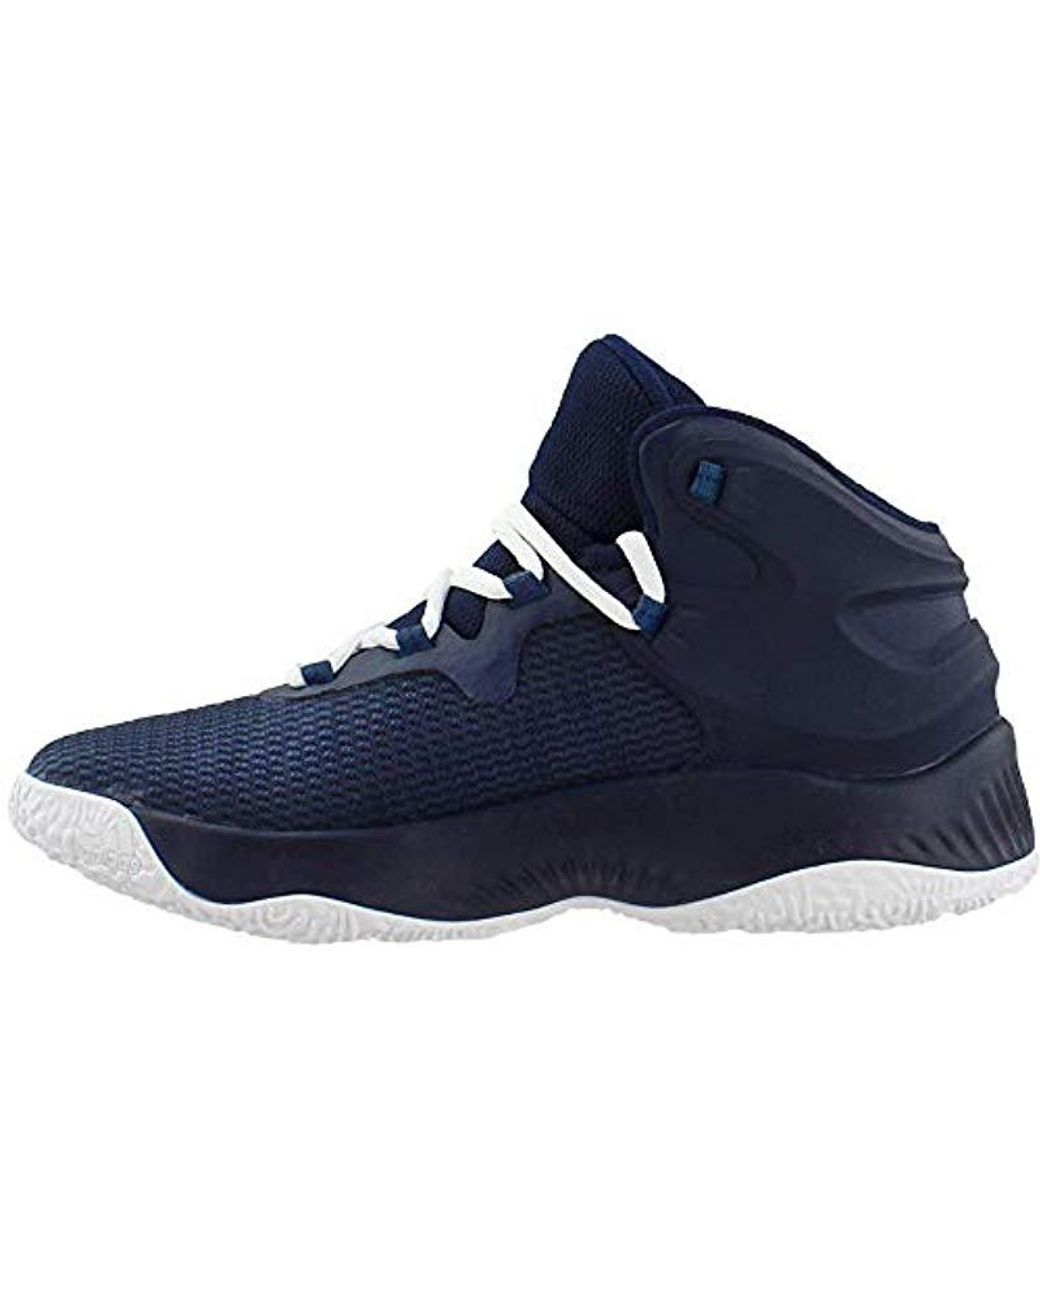 Men/'s Fashion Basketball Shoes Breathable Flyknit Sneakers Explosive Bounce Runn